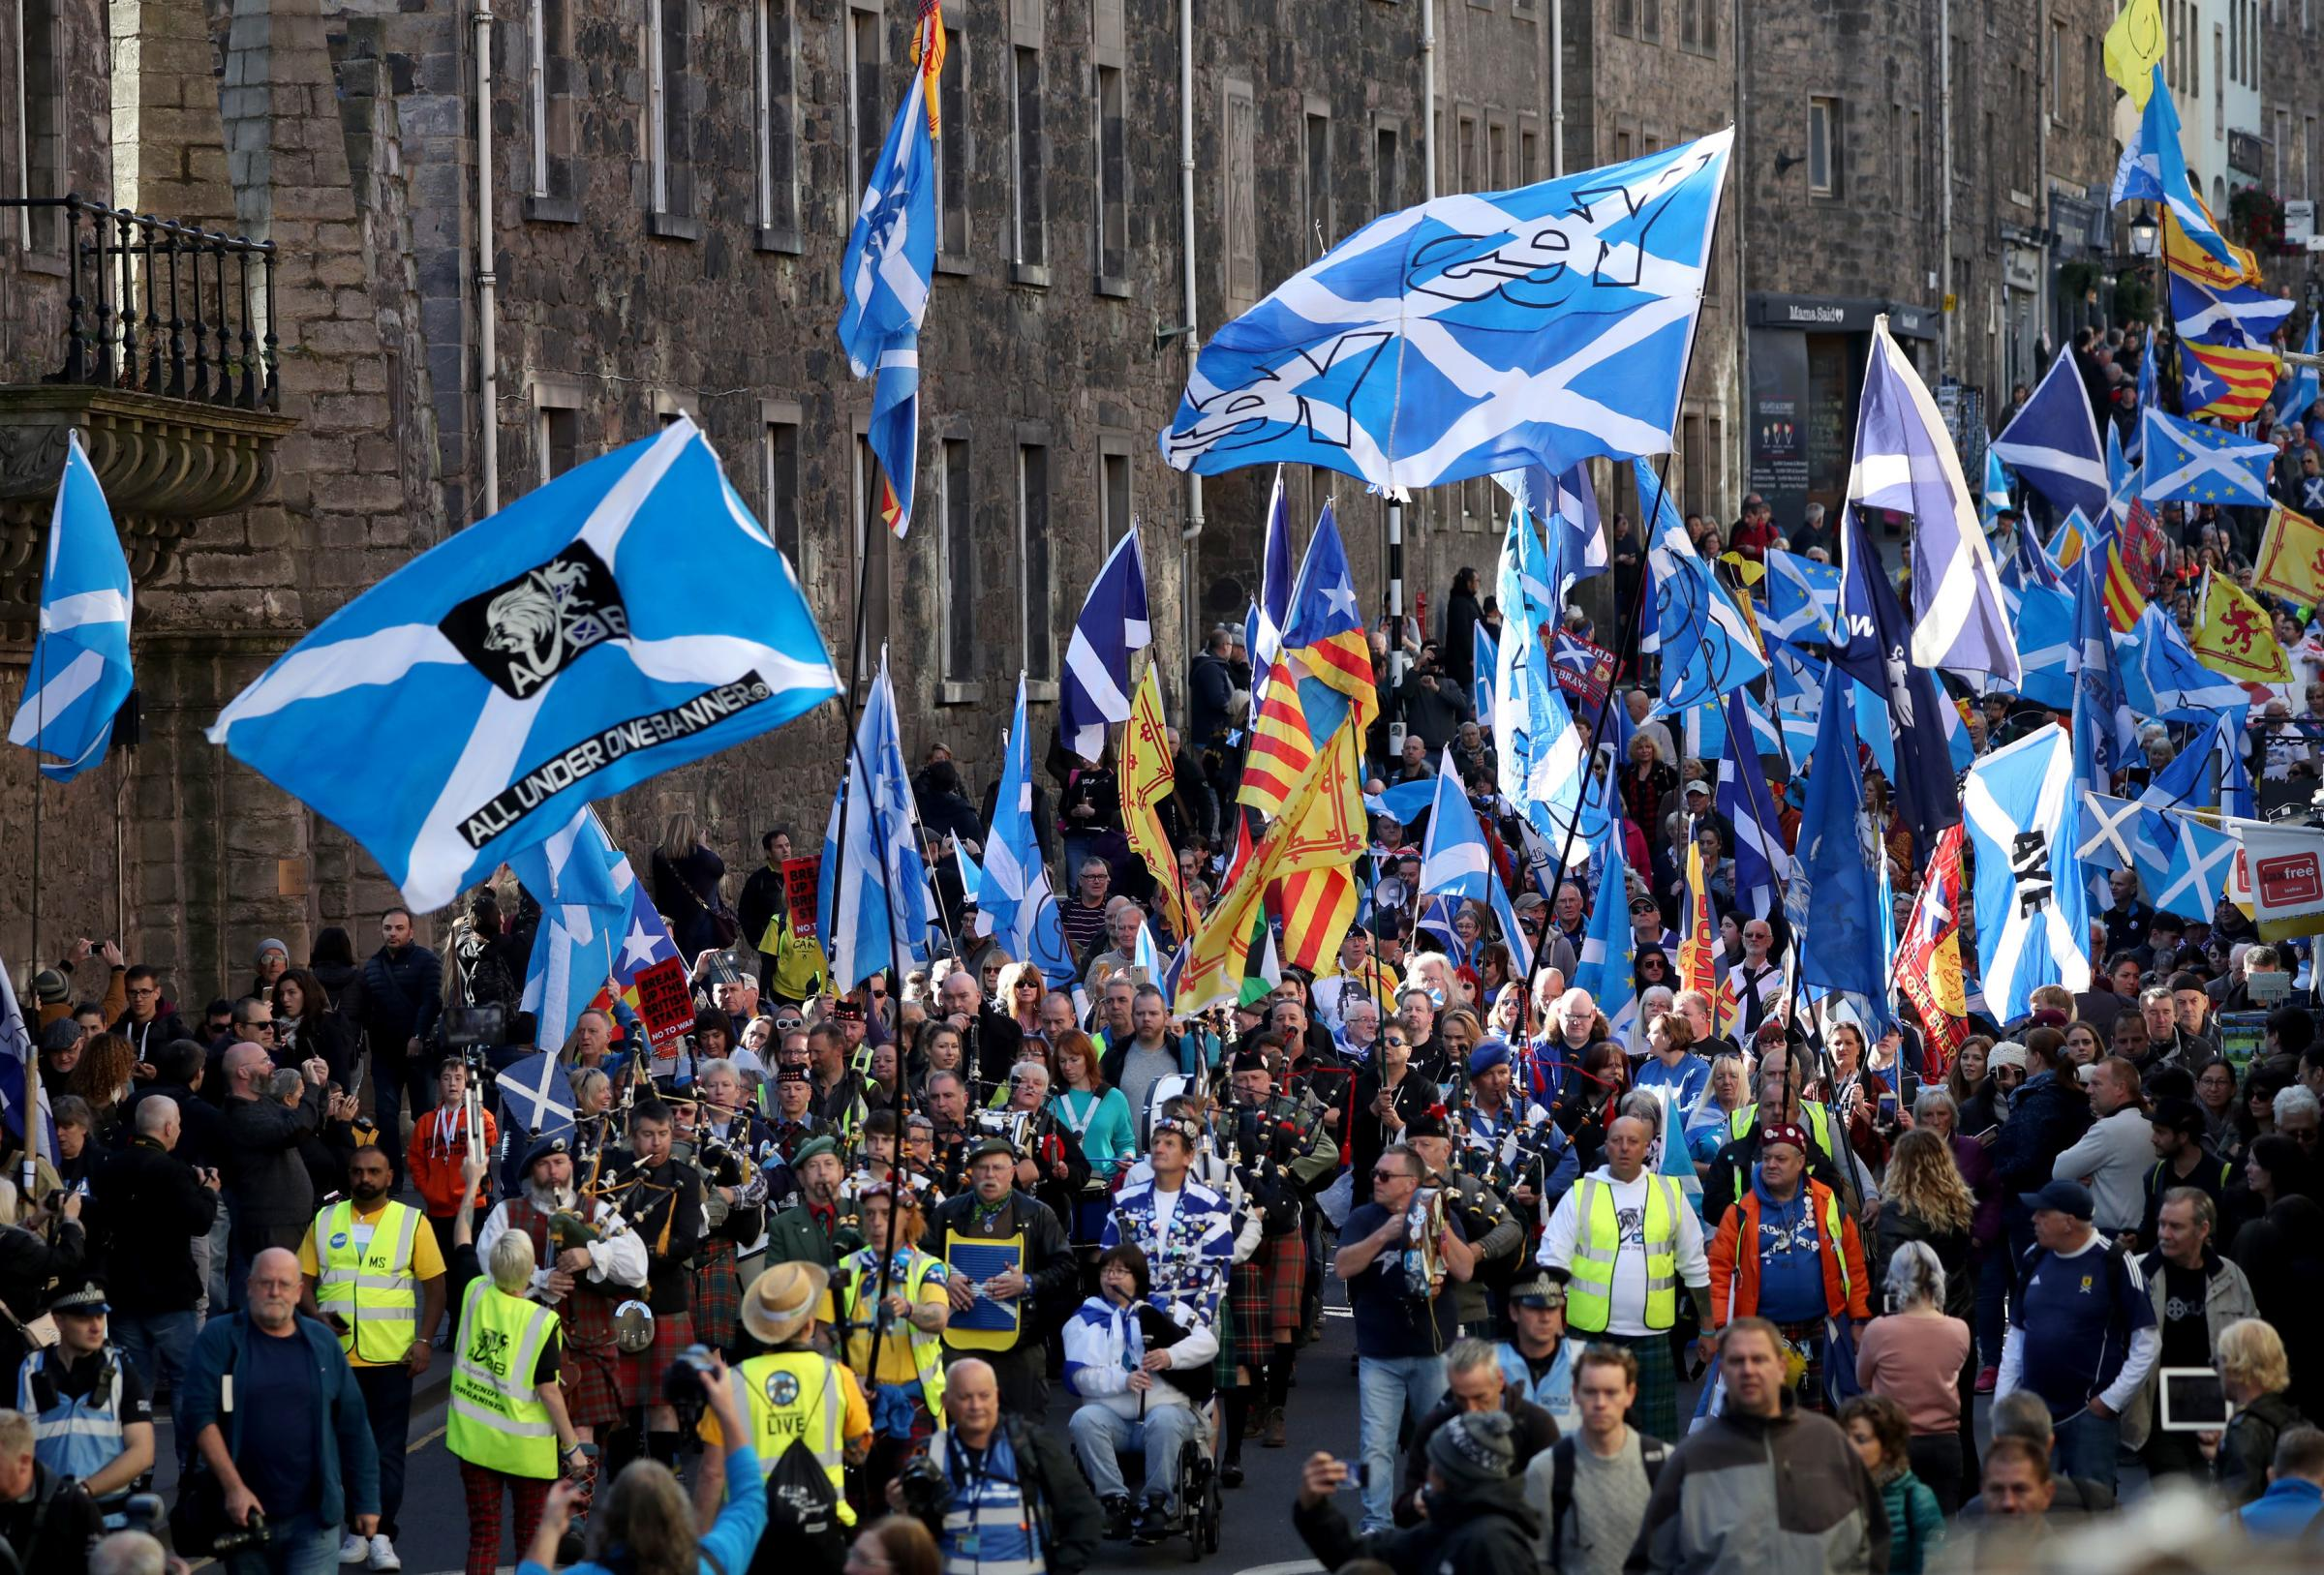 The All Under One Banner independence march in Edinburgh